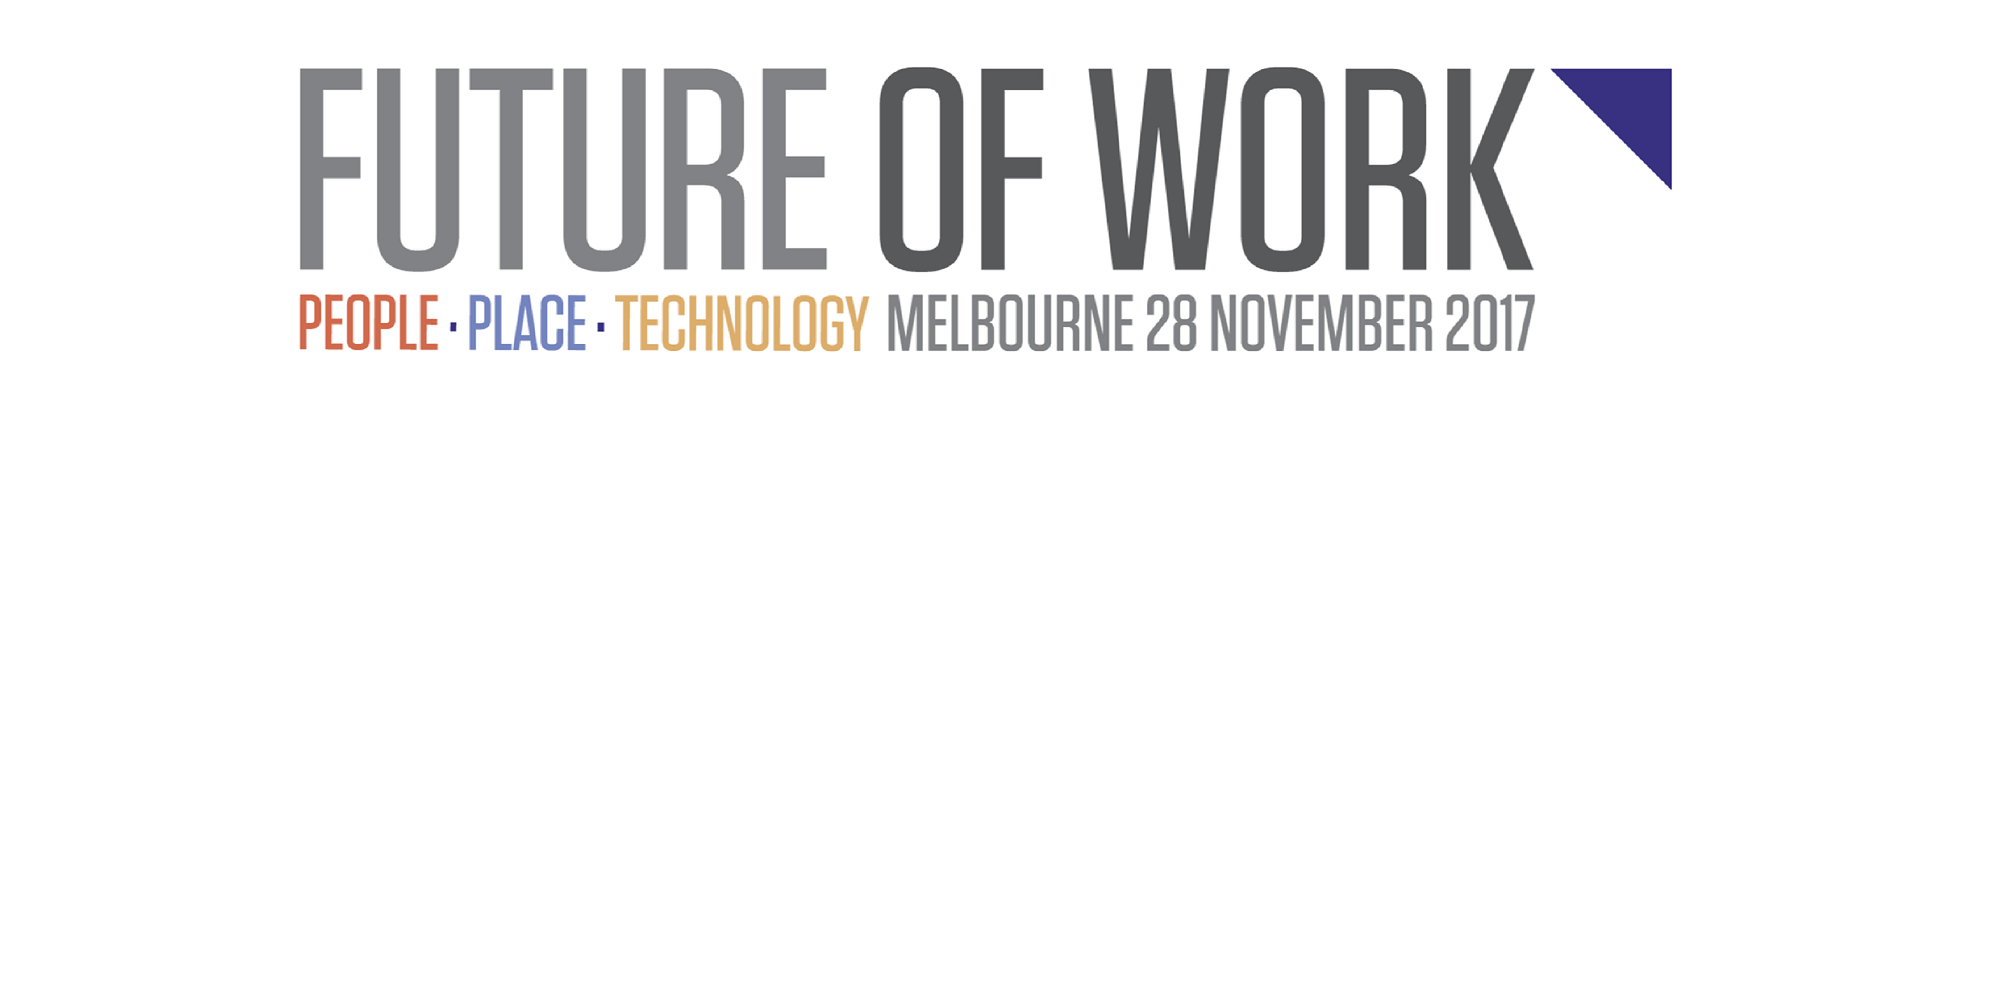 What will the future of work look like in Australia?